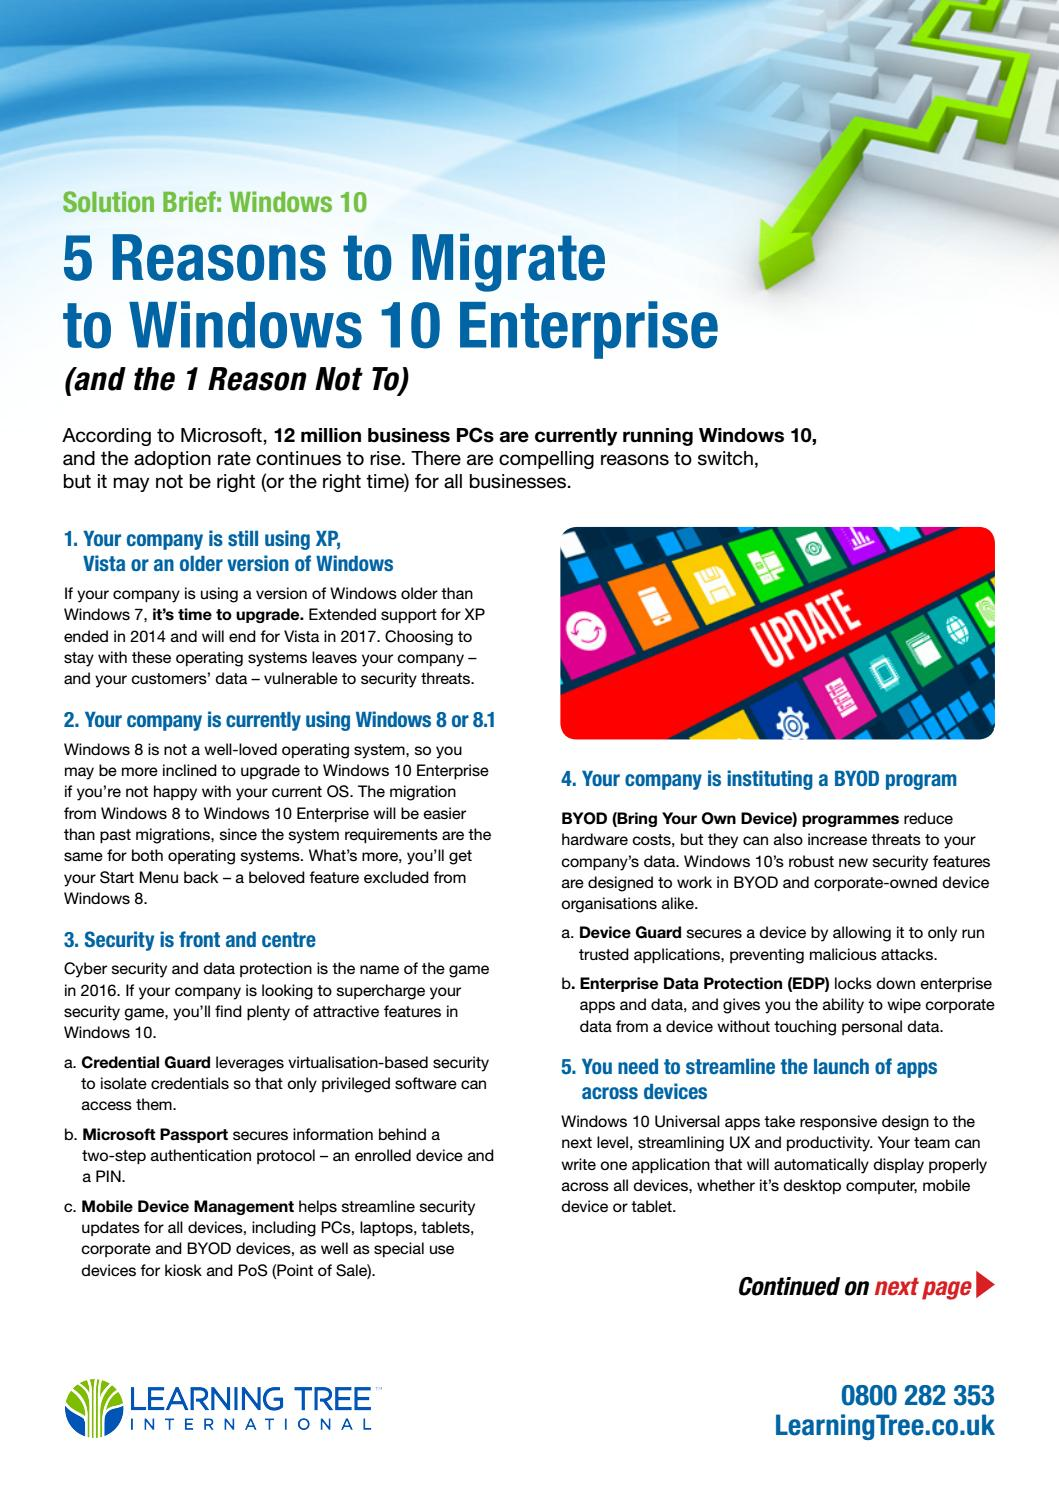 5 Reasons to Migrate to Windows 10 Enterprise - UK edition